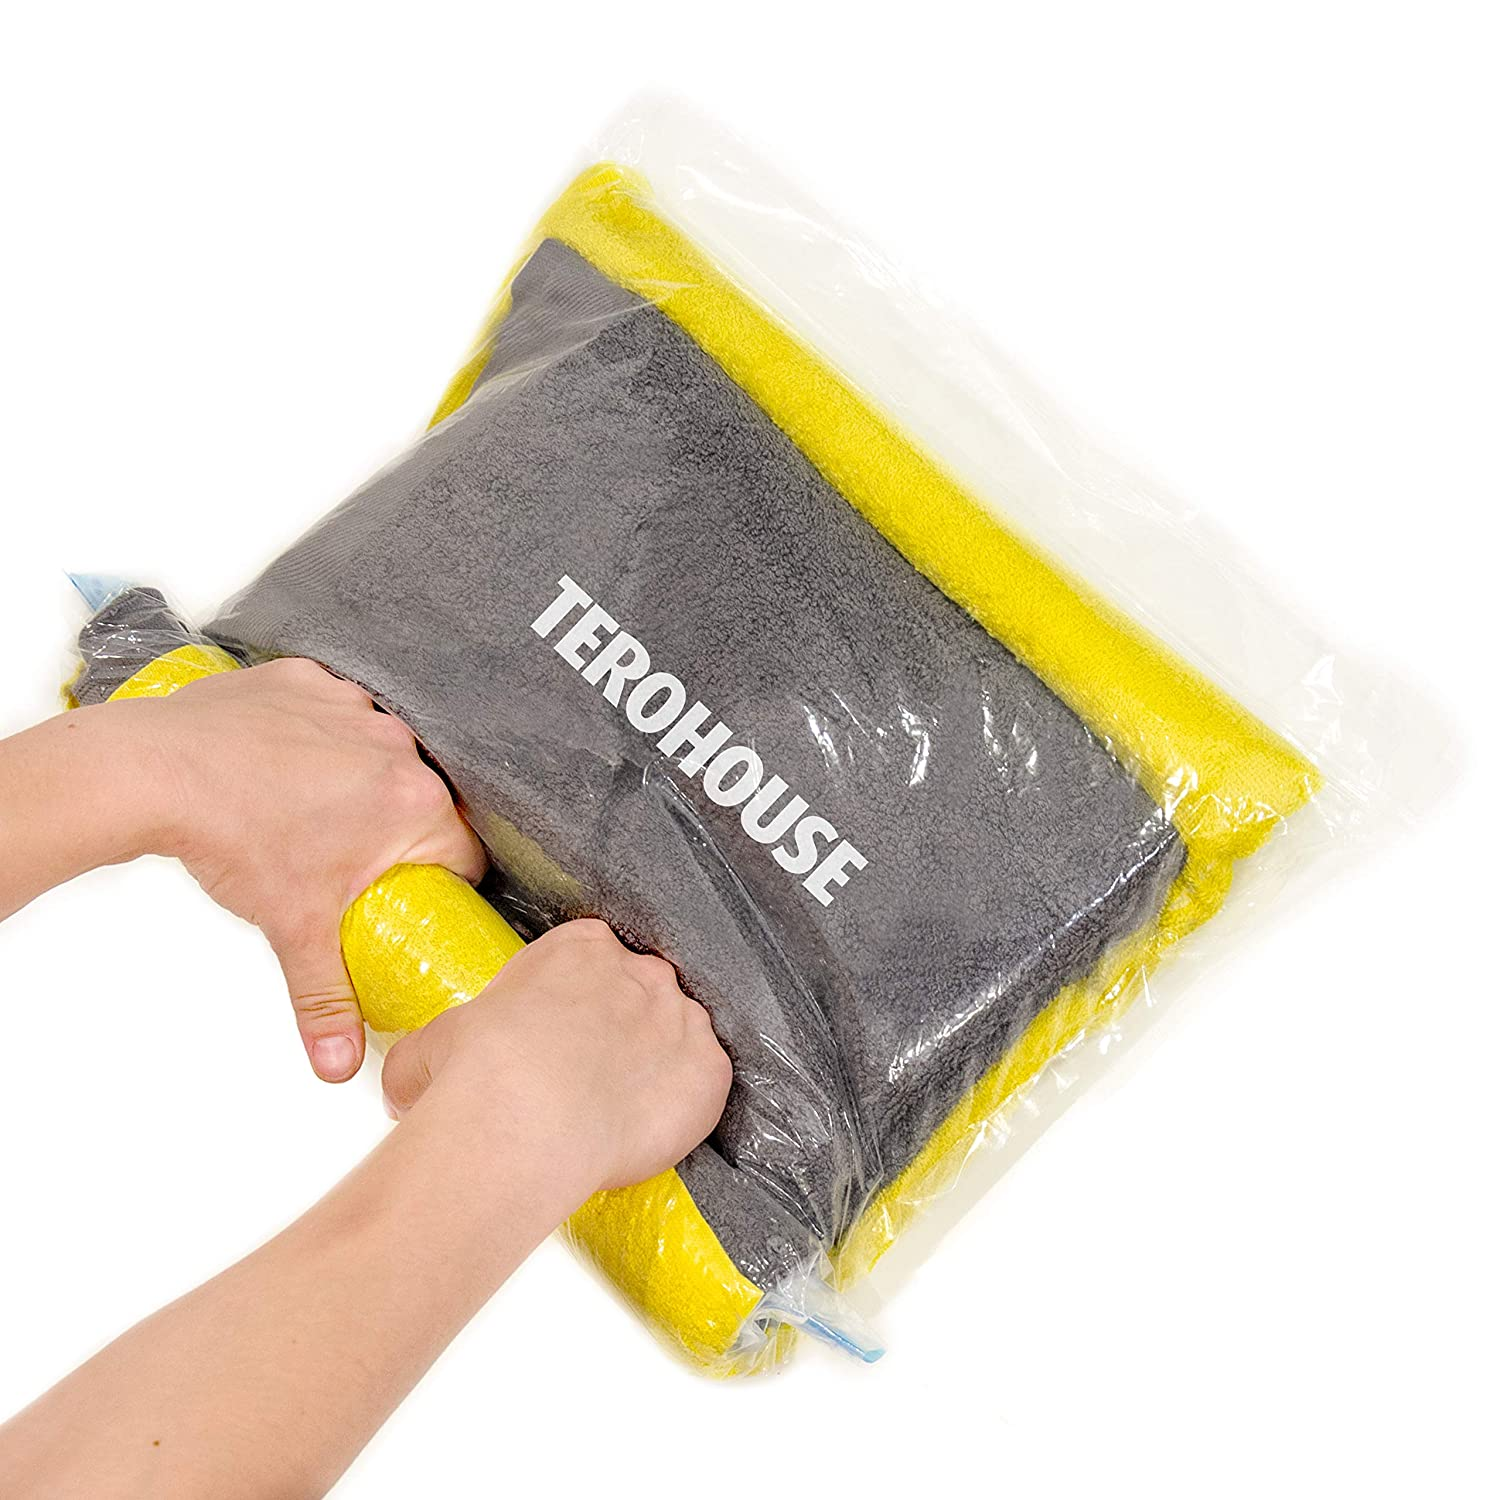 "TeroHouse 10 Travel Storage Bags For Clothes Space Saver Packing Sacks - [5x Large 28x20"", 5x Medium 24x16""] Rolling Compression Bag For Luggage. Air Space Roll Up Bags No Vacuum or Pump Needed"